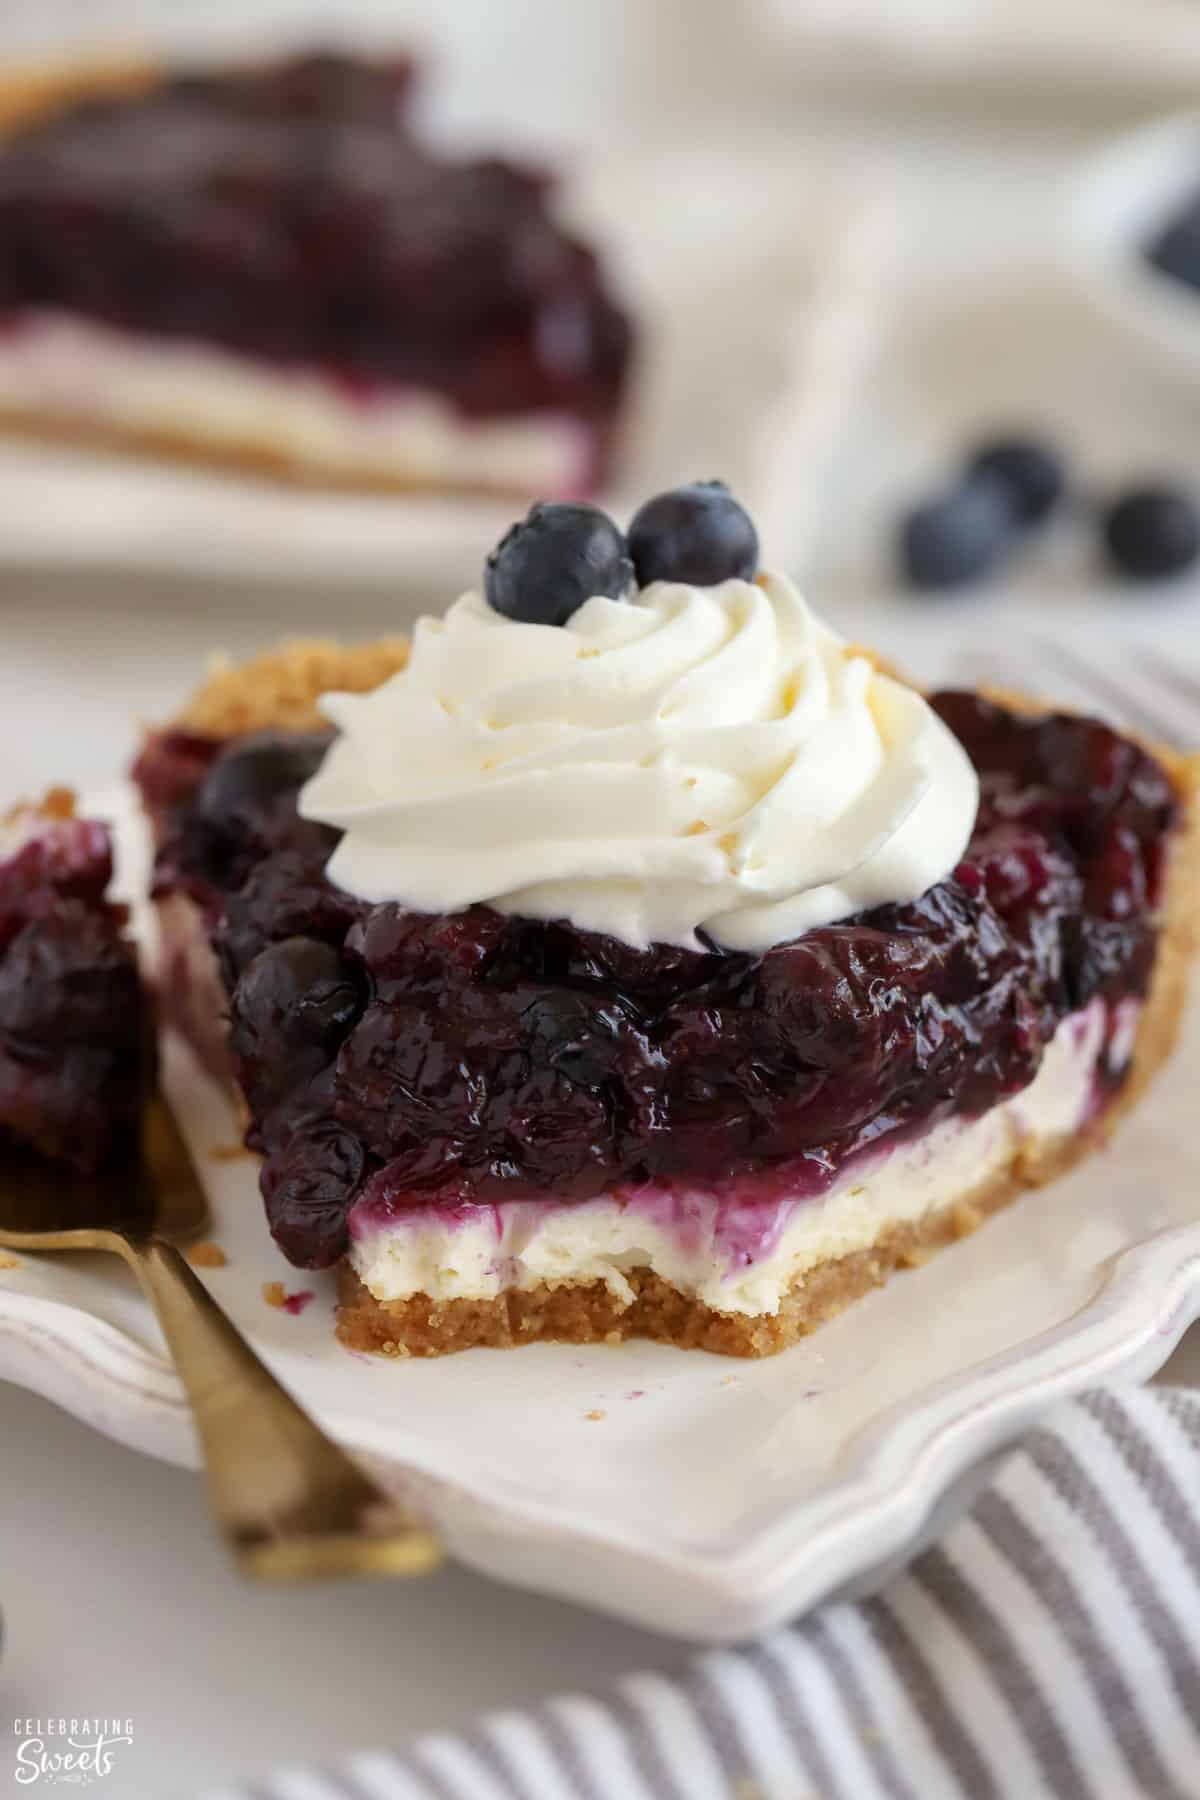 Slice of Blueberry Pie on a white plate topped with whipped cream.